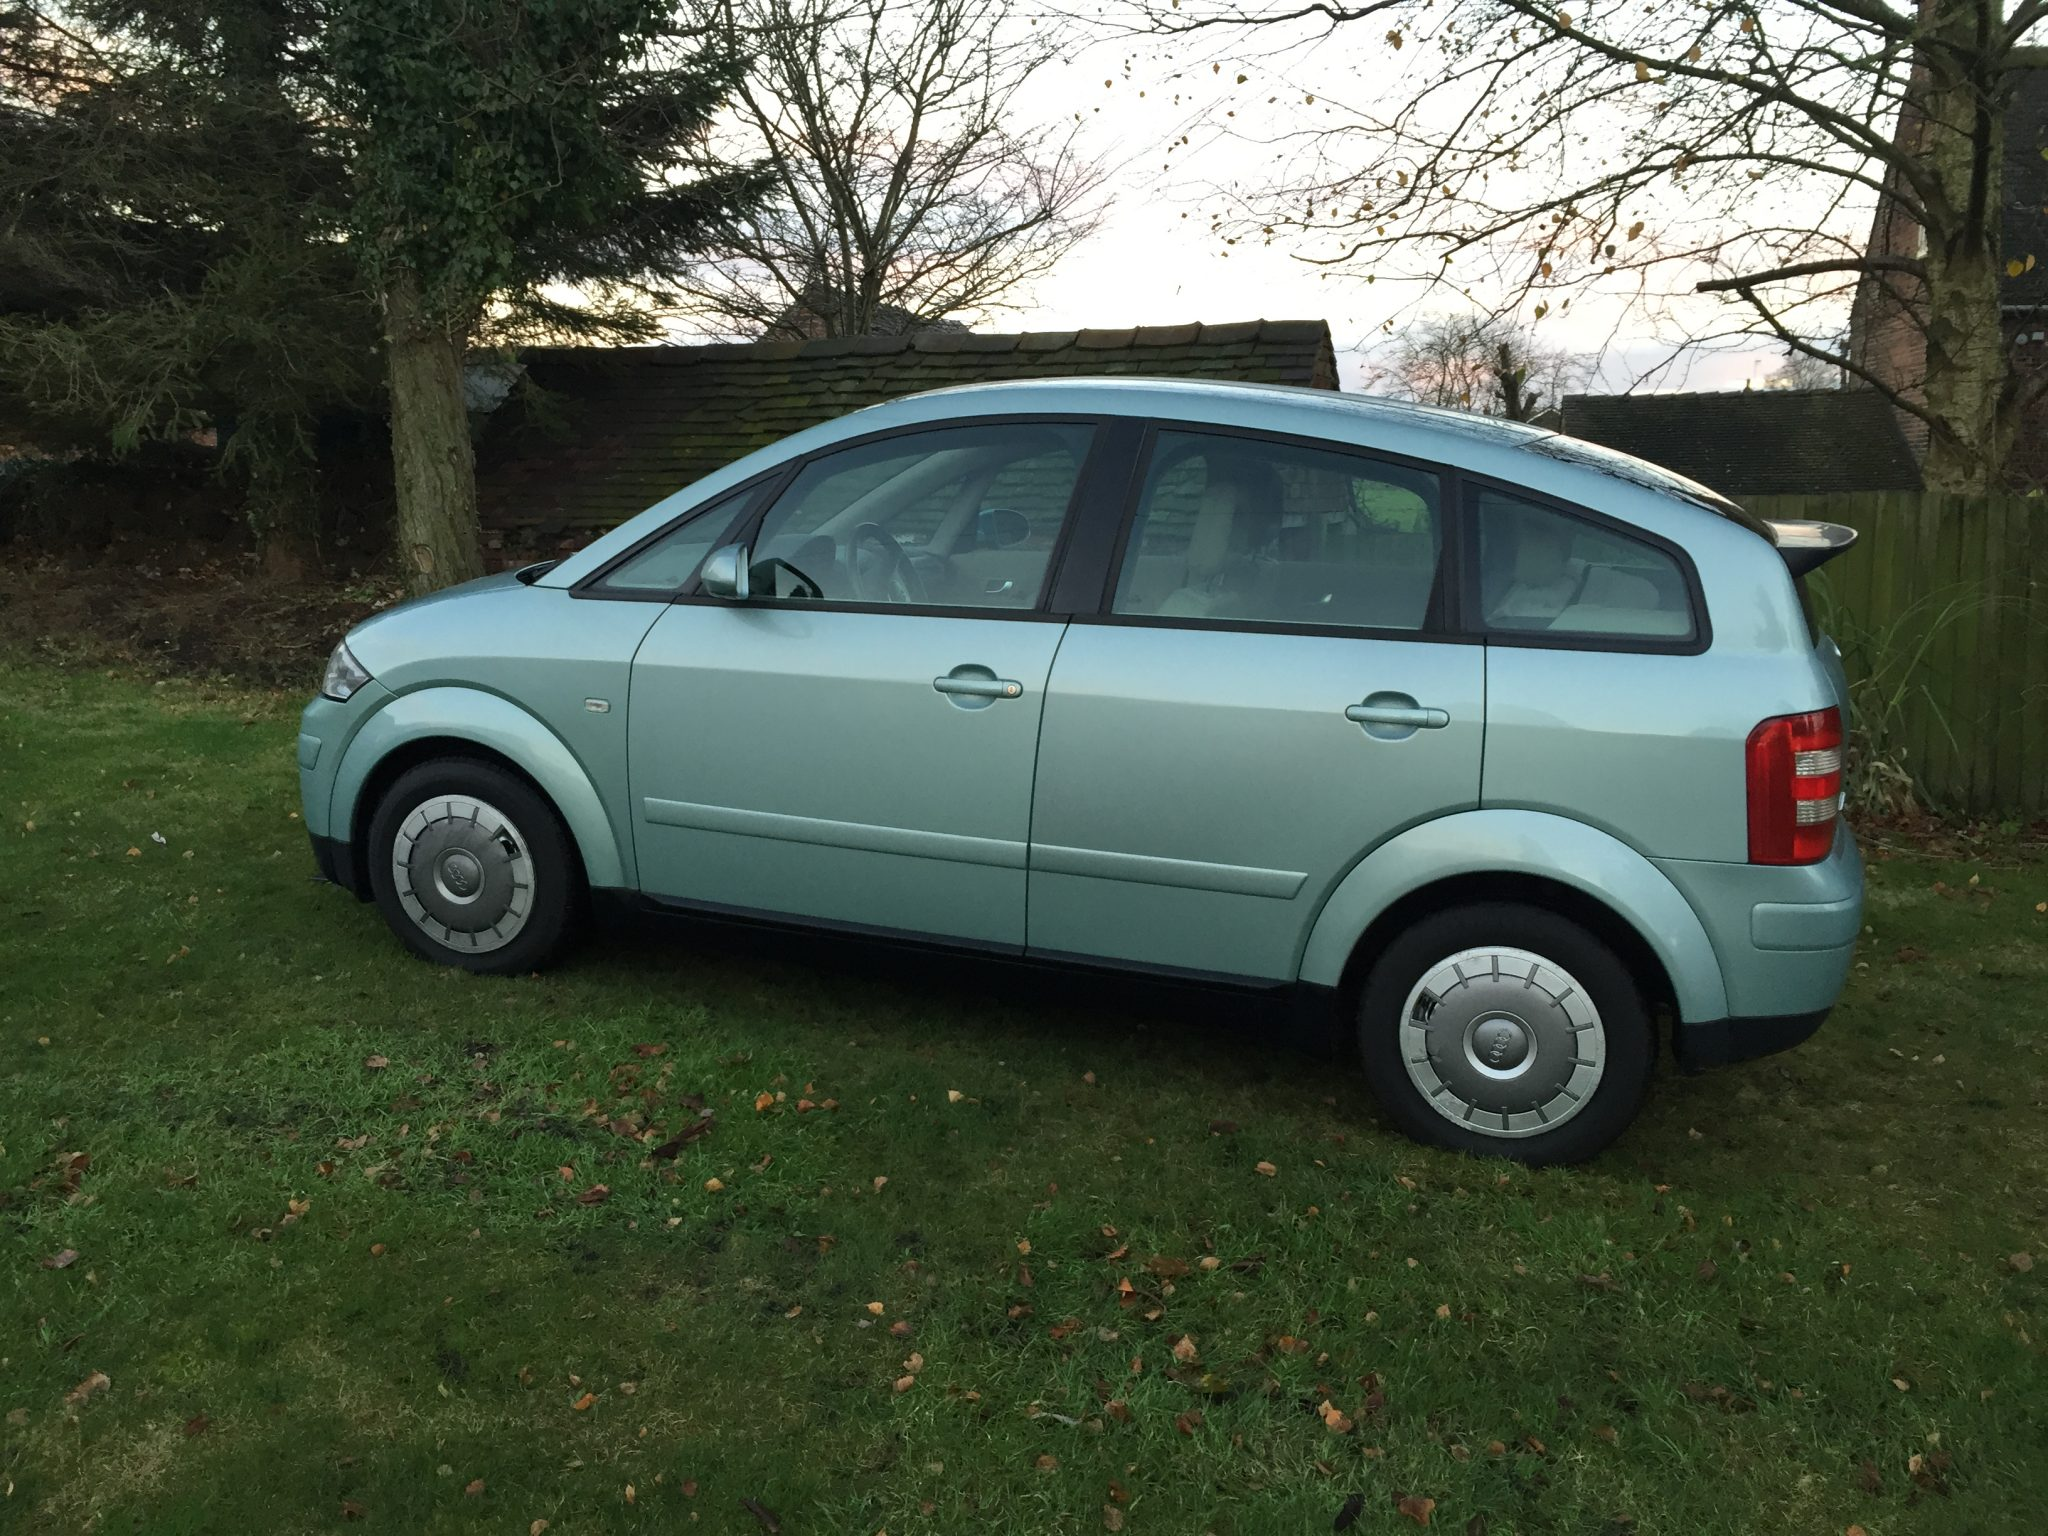 2001 audi a2 1 2 tdi auto island green 3l rare auto uk conversion belt done. Black Bedroom Furniture Sets. Home Design Ideas